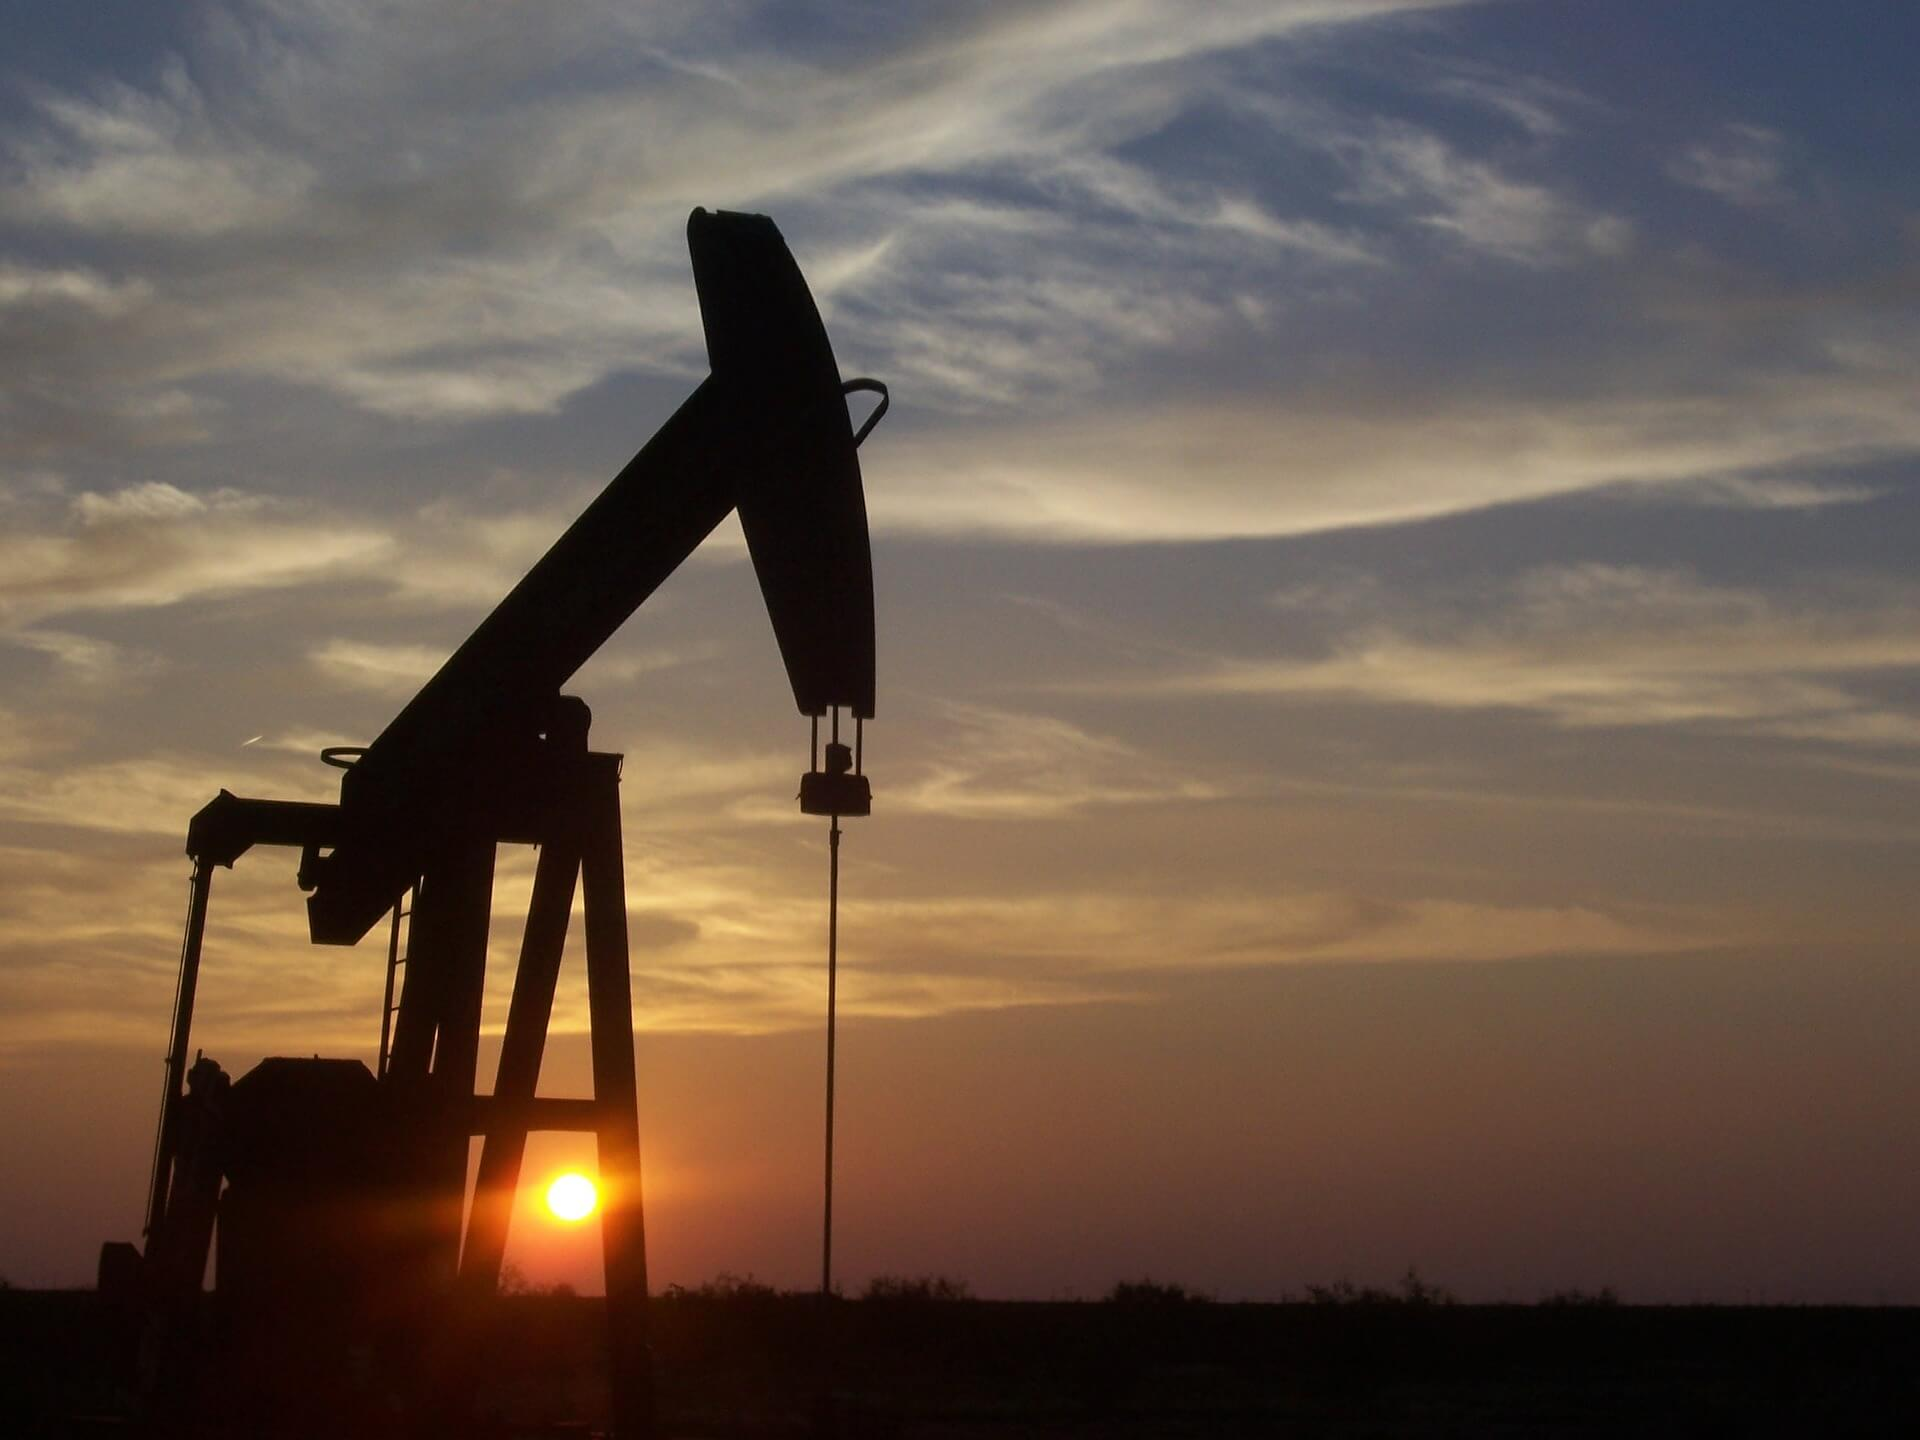 Oil and Gas Extraction: Will Contractors Reap the Benefits?